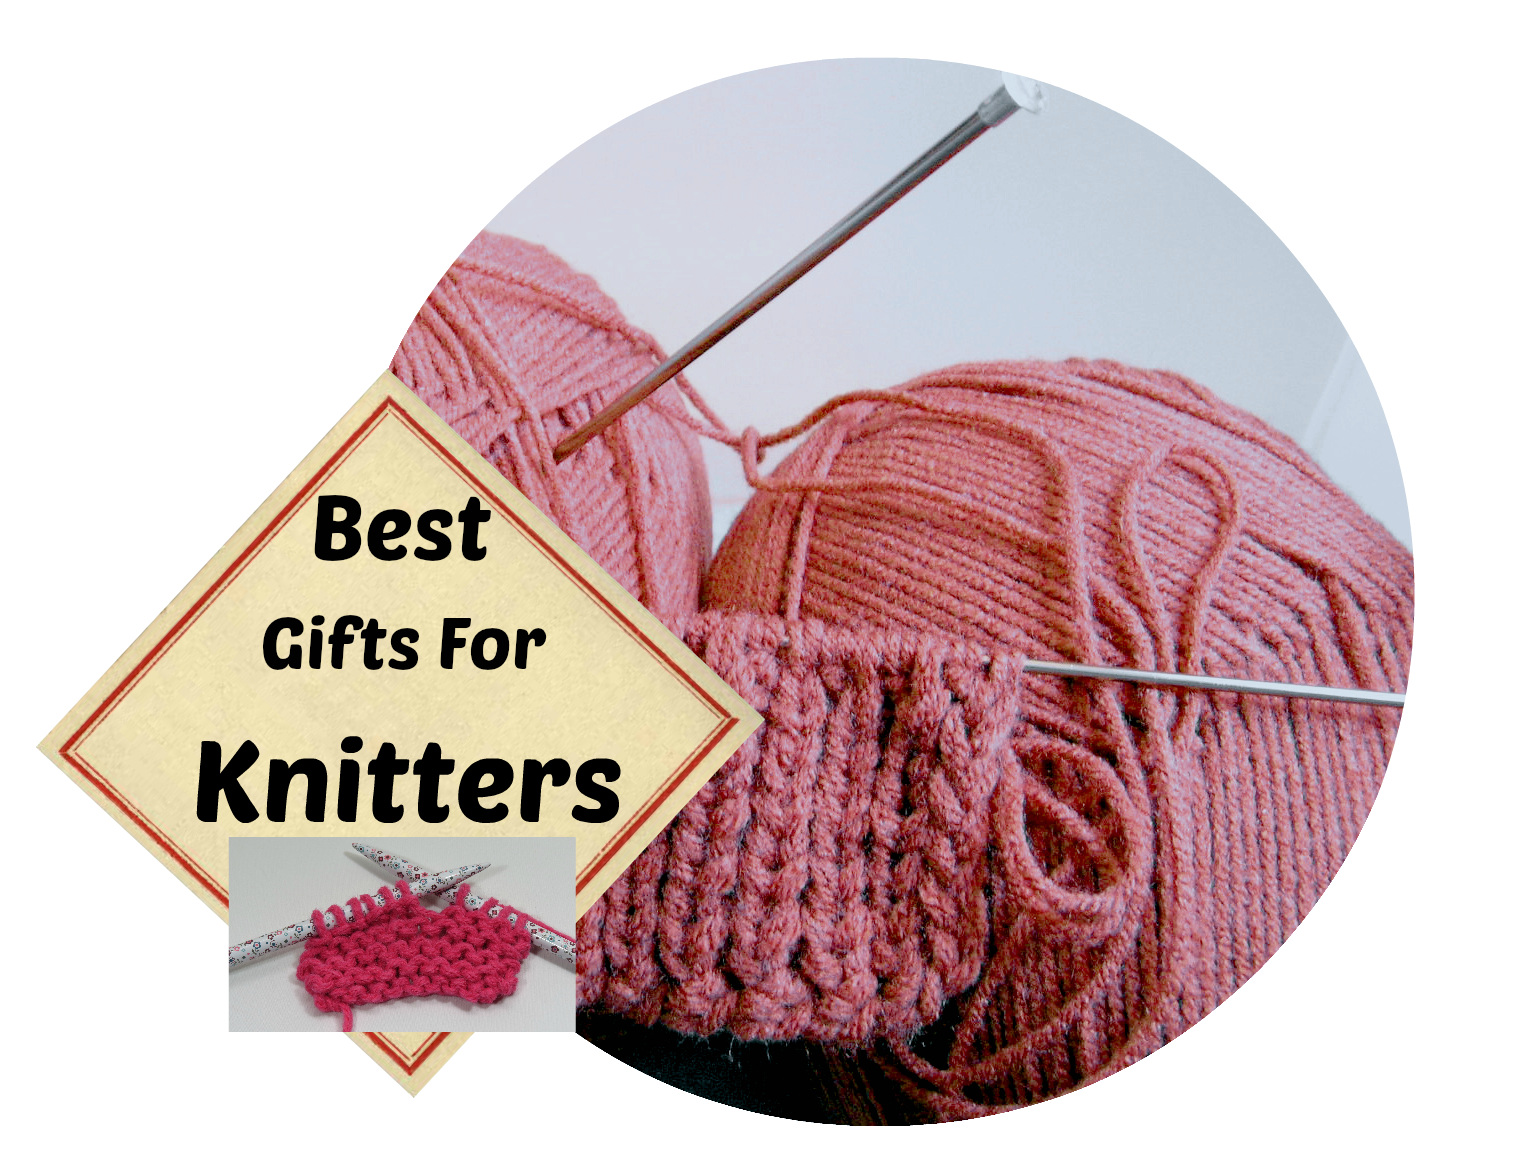 Transparent yarn unraveled. Best gifts for knitters